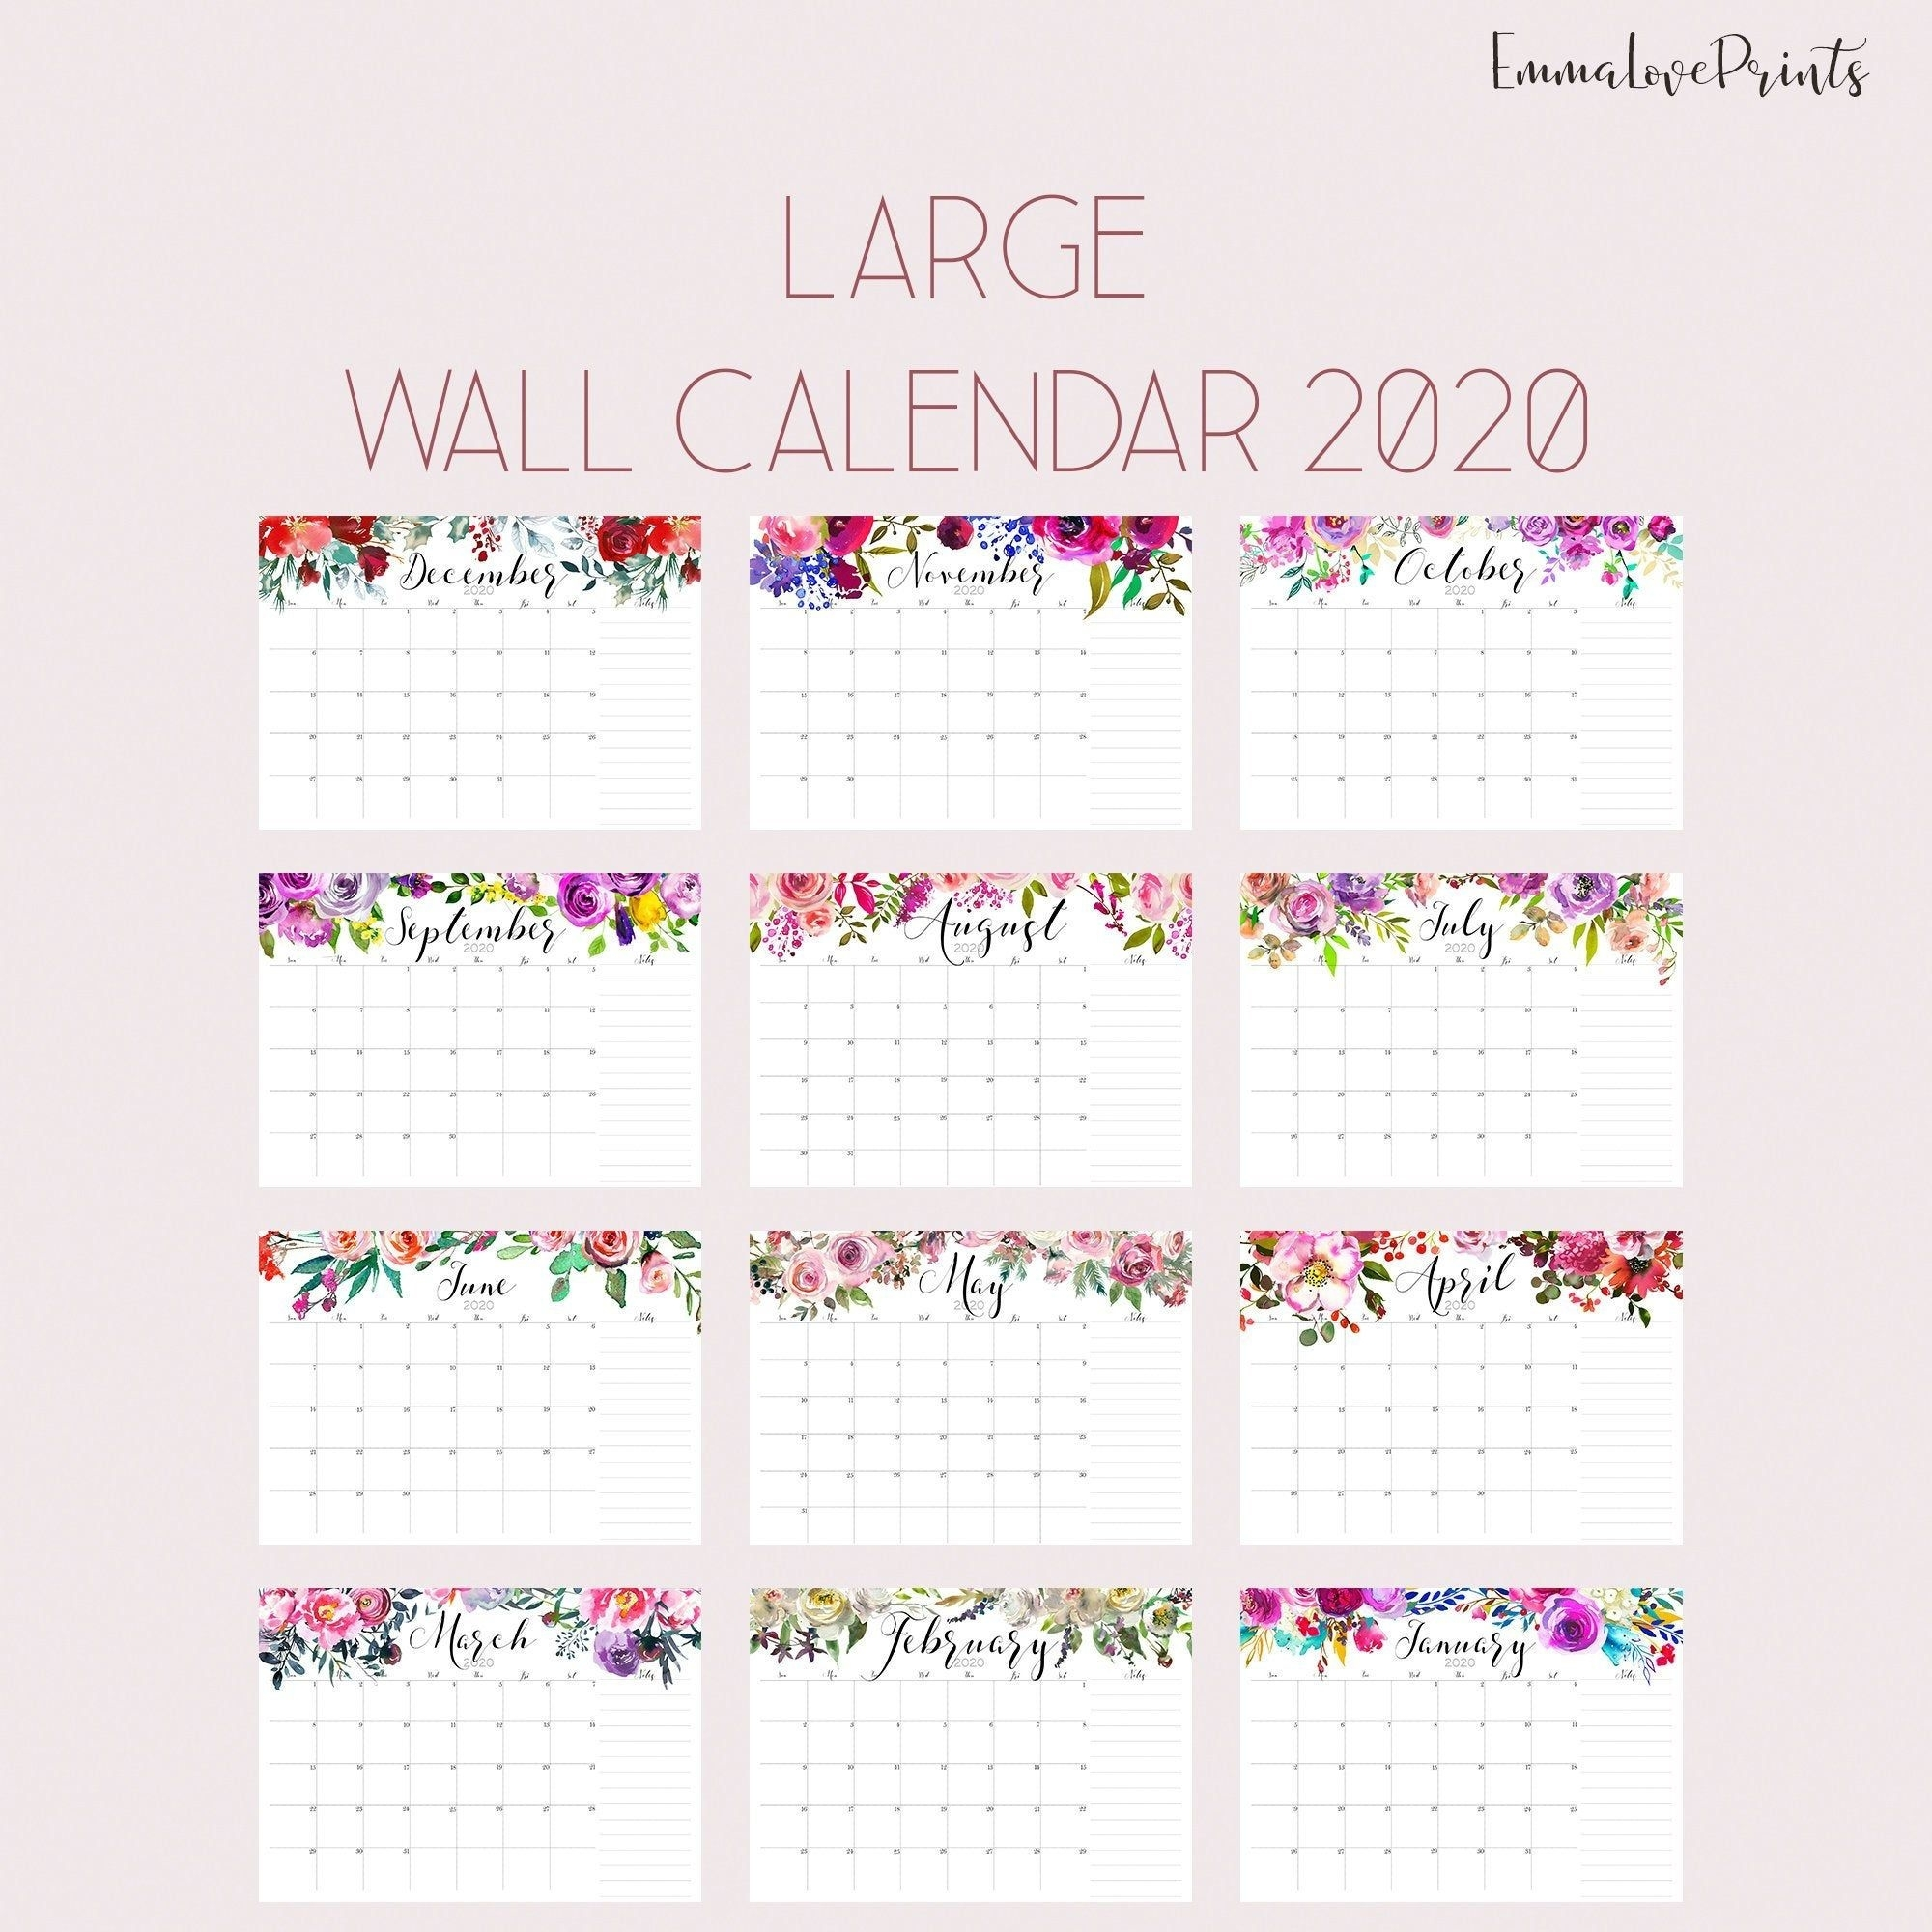 Large Wall Calendar 2020, Watercolor Calendar, A3 Calendar